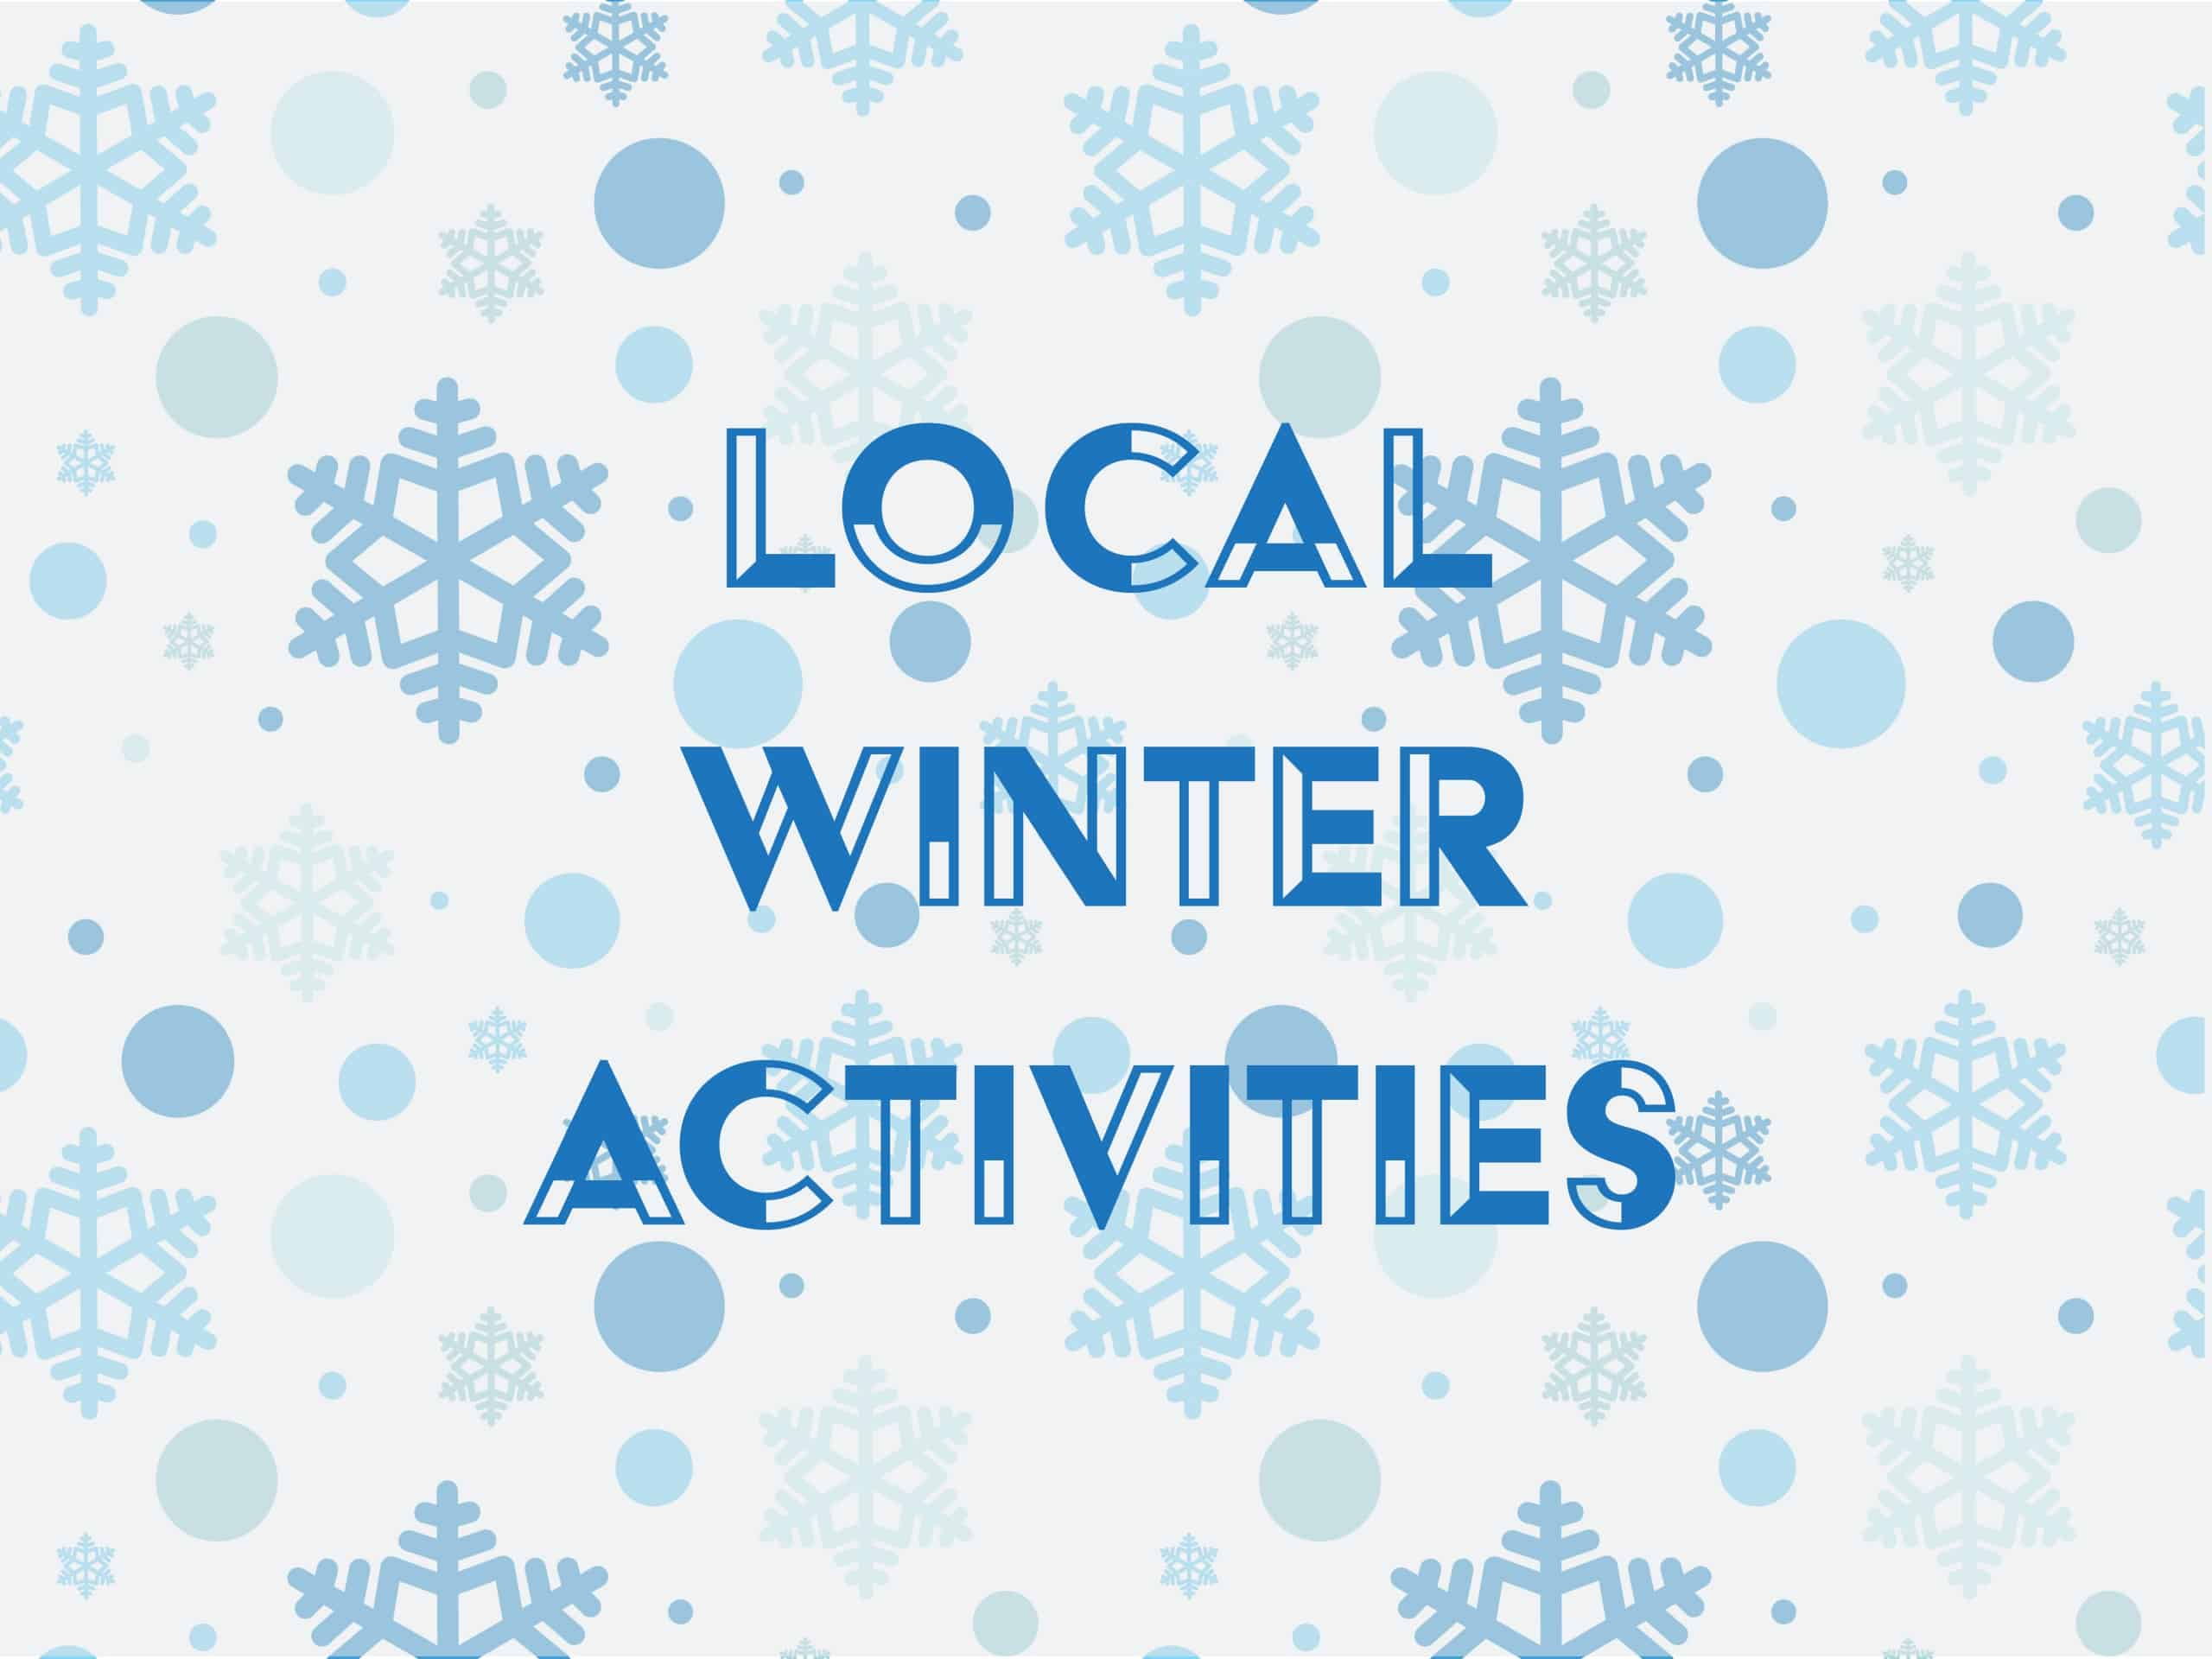 Local Winter Activities